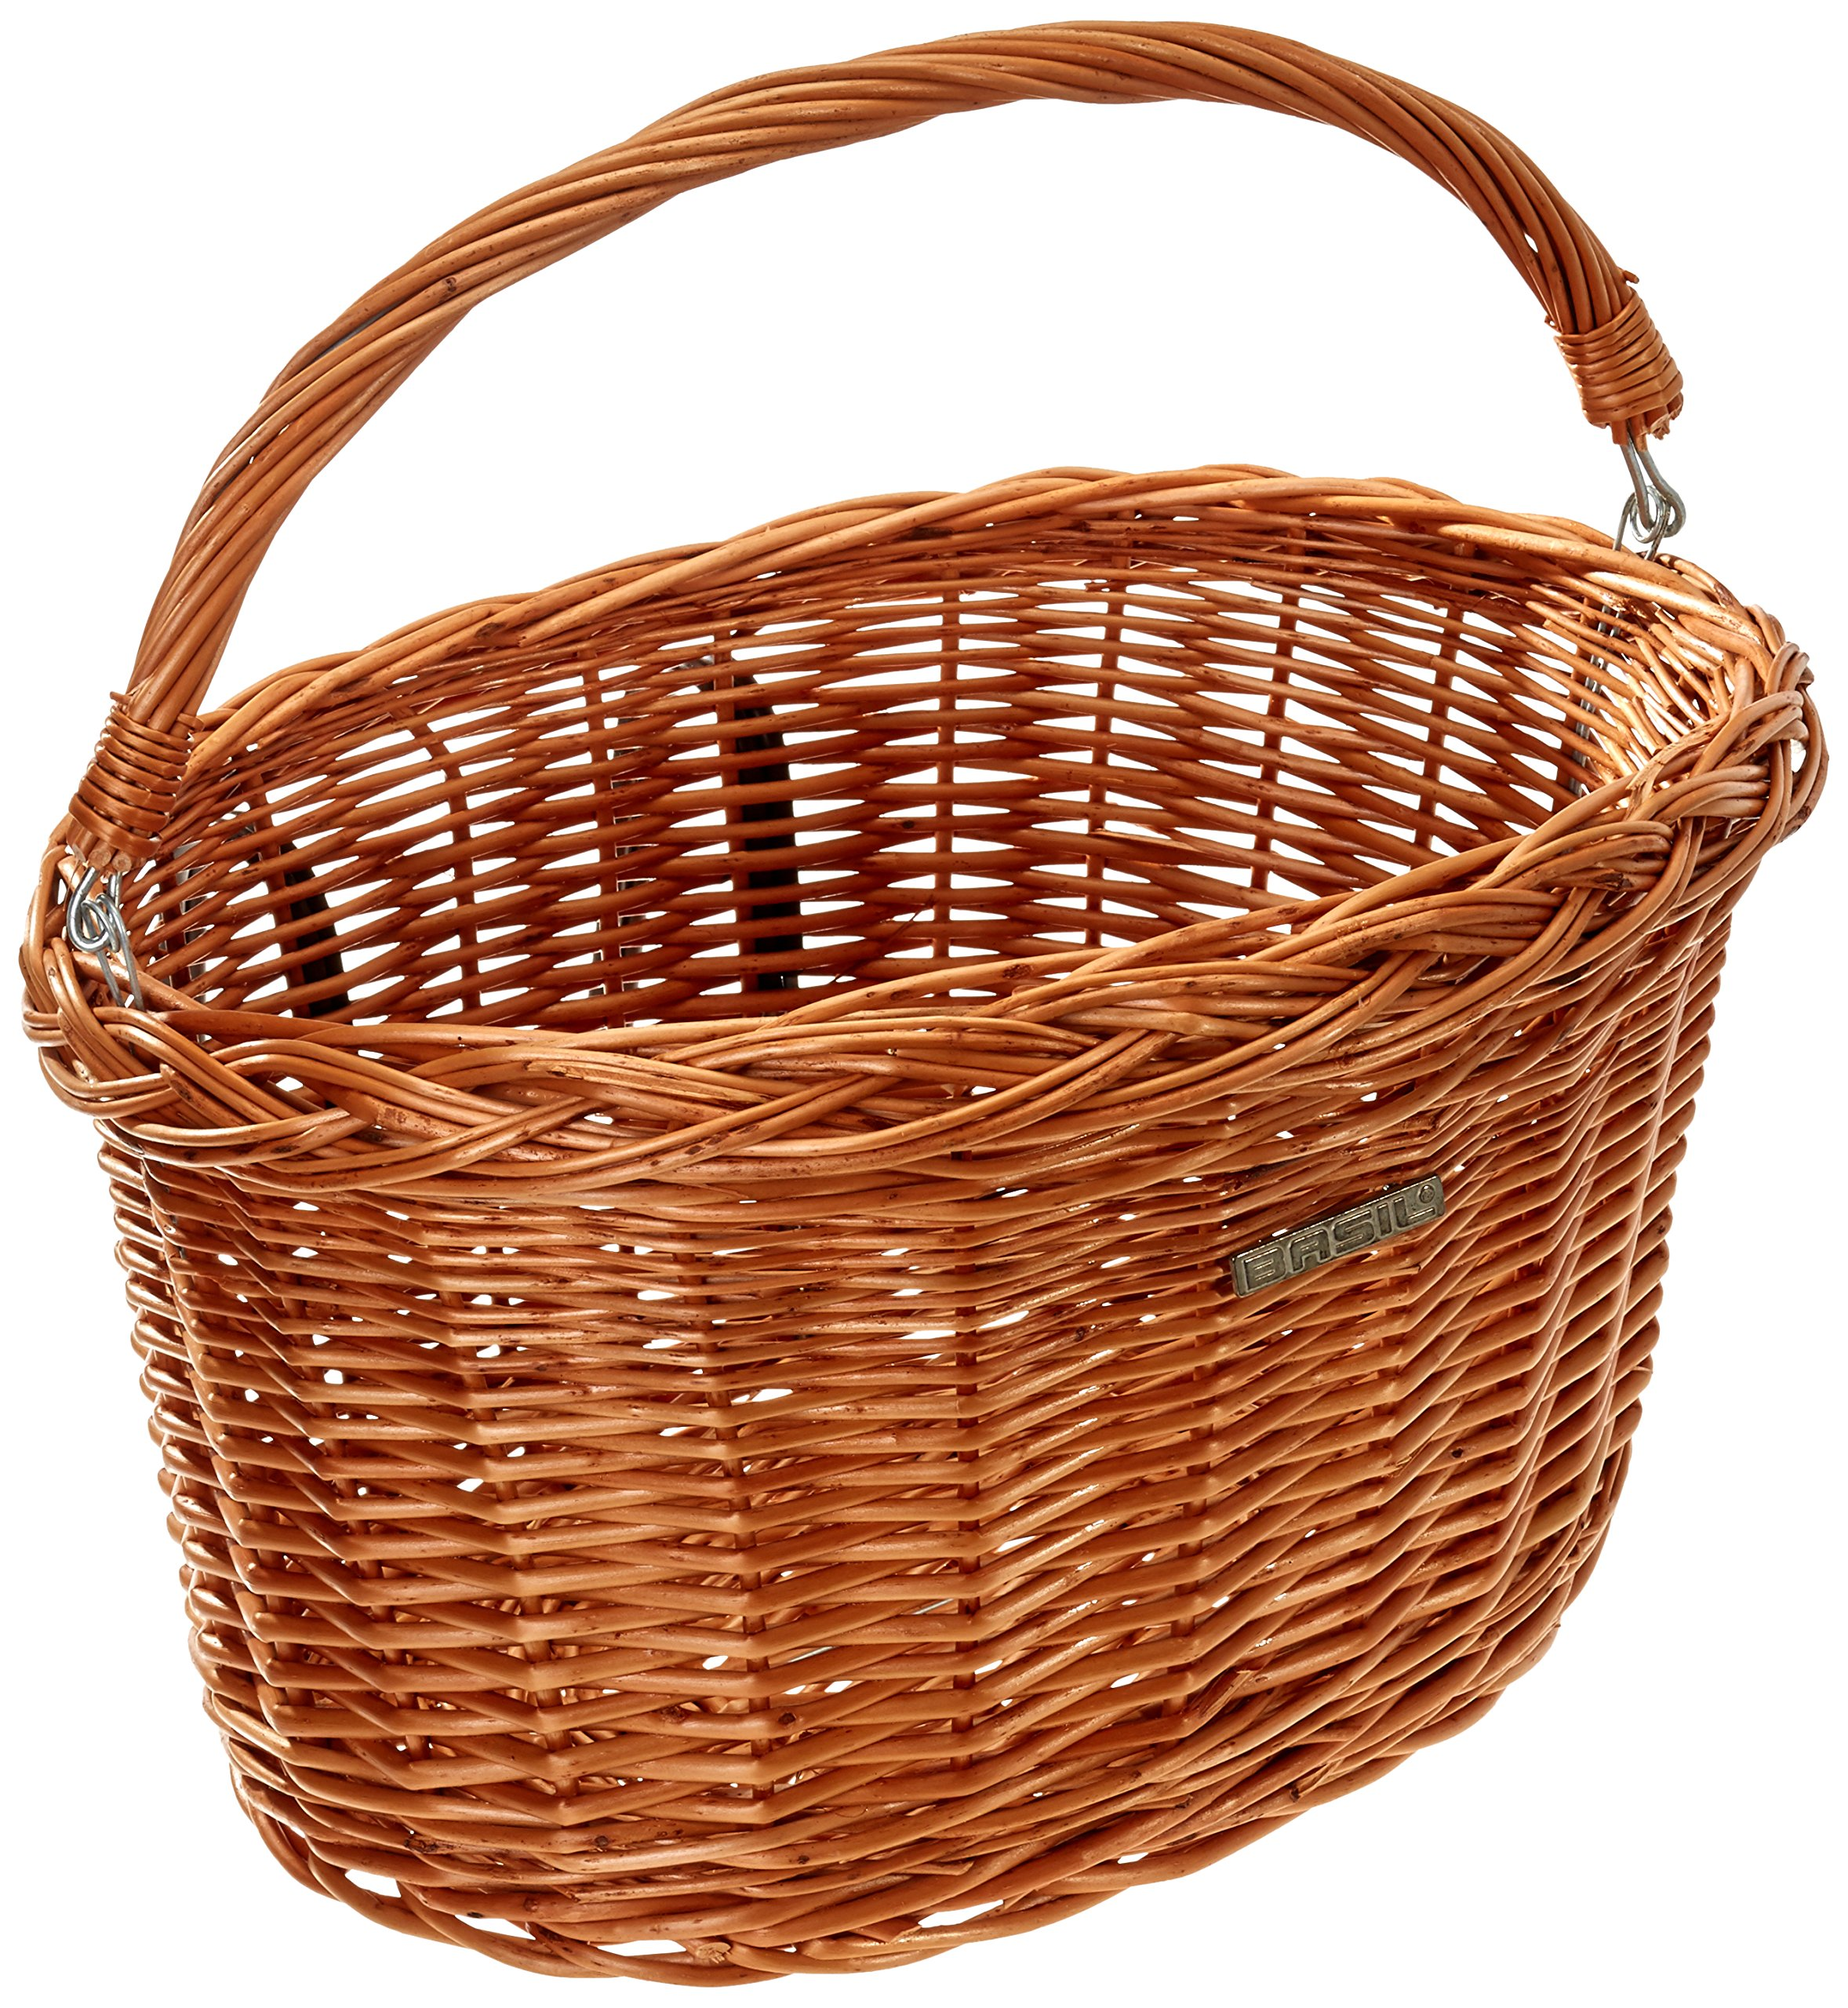 Bell Basil Detroit Wicker Oval Bicycle Basket, Natural